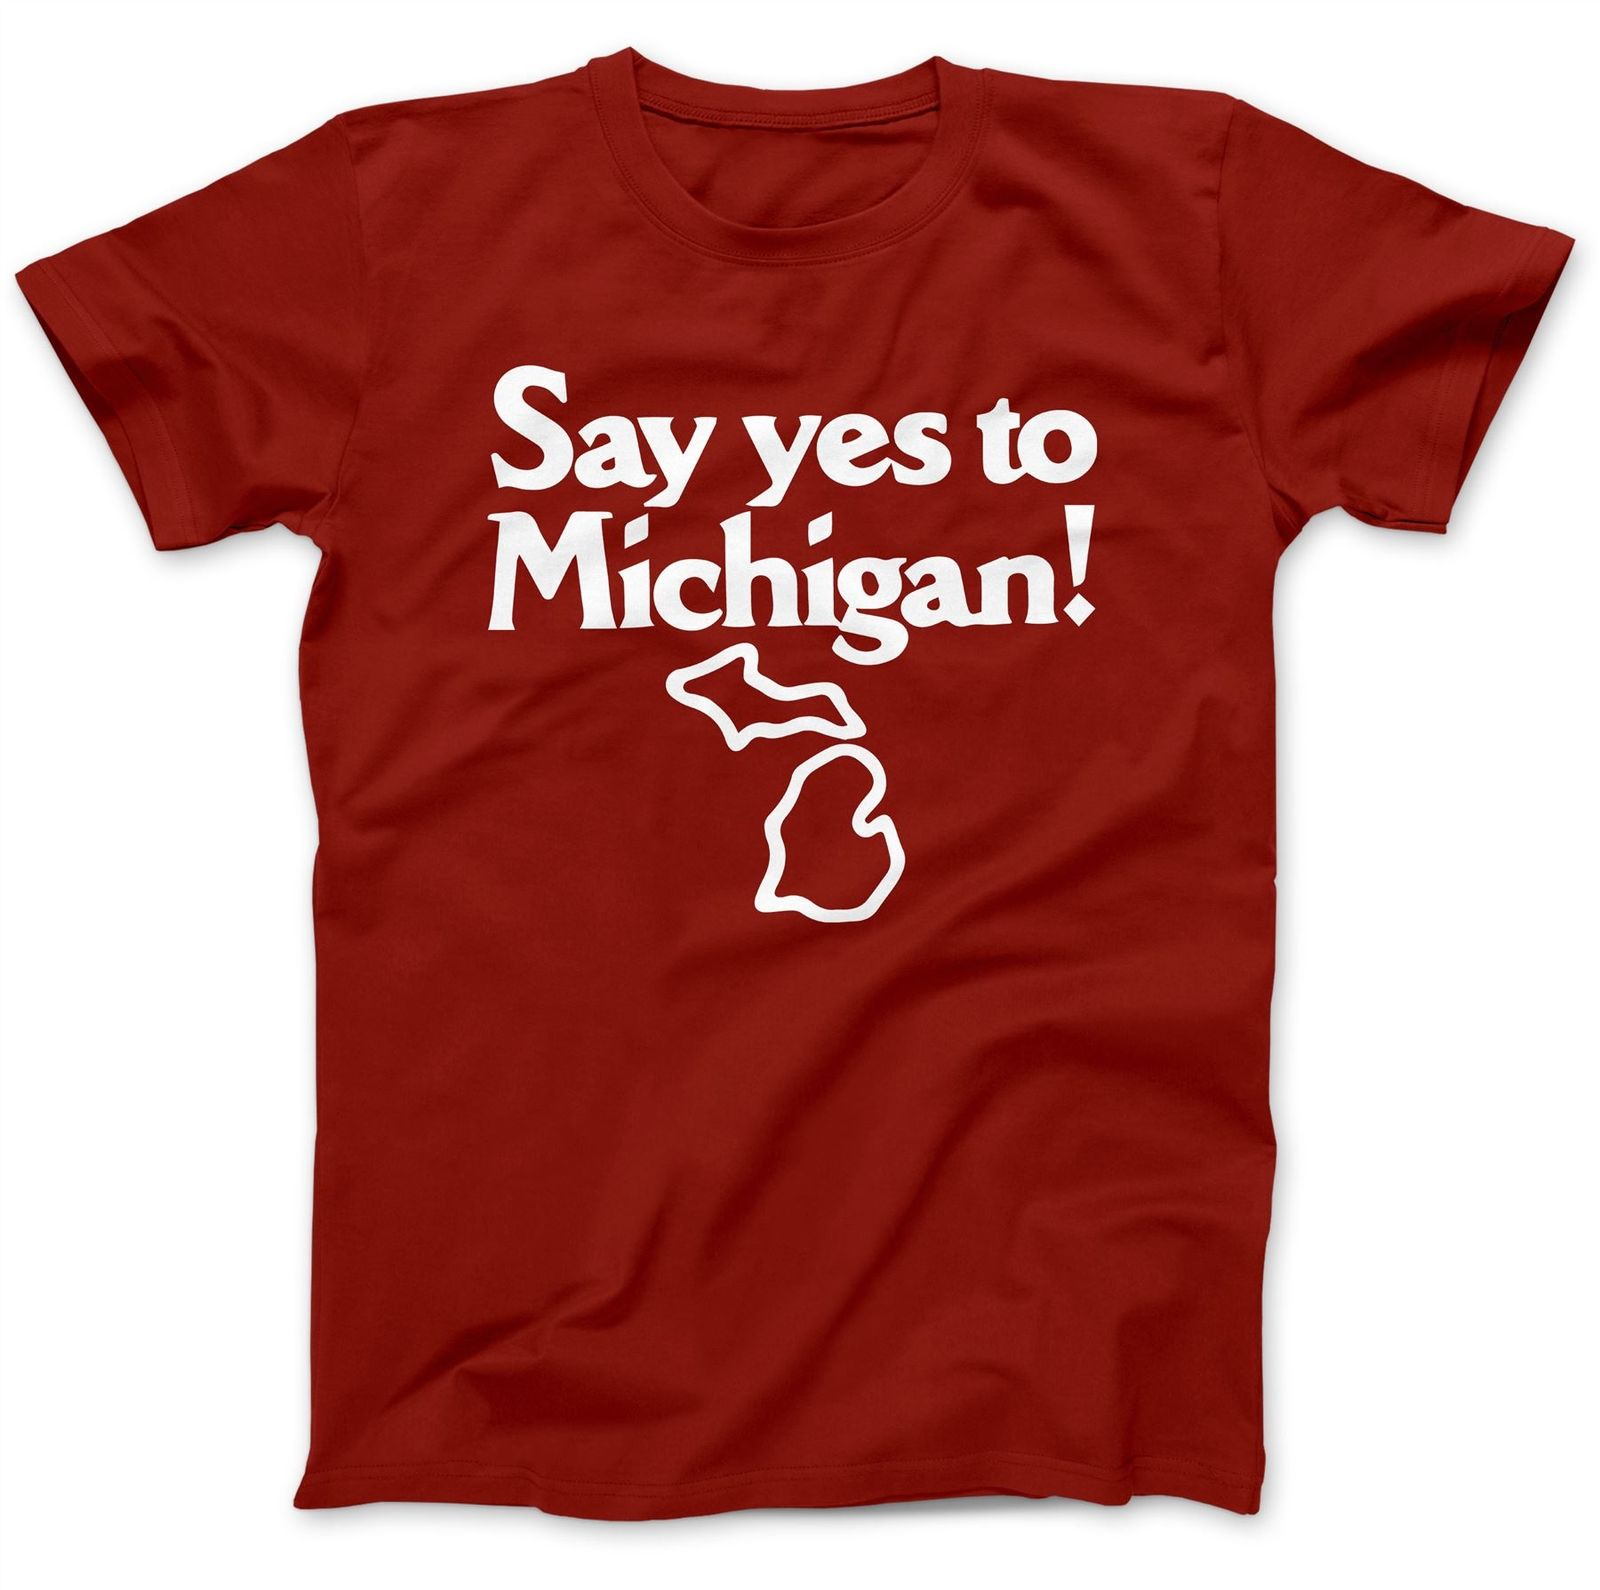 Say Yes To Michigan As Worn By Jack White T-Shirt 100% Premium Cotton